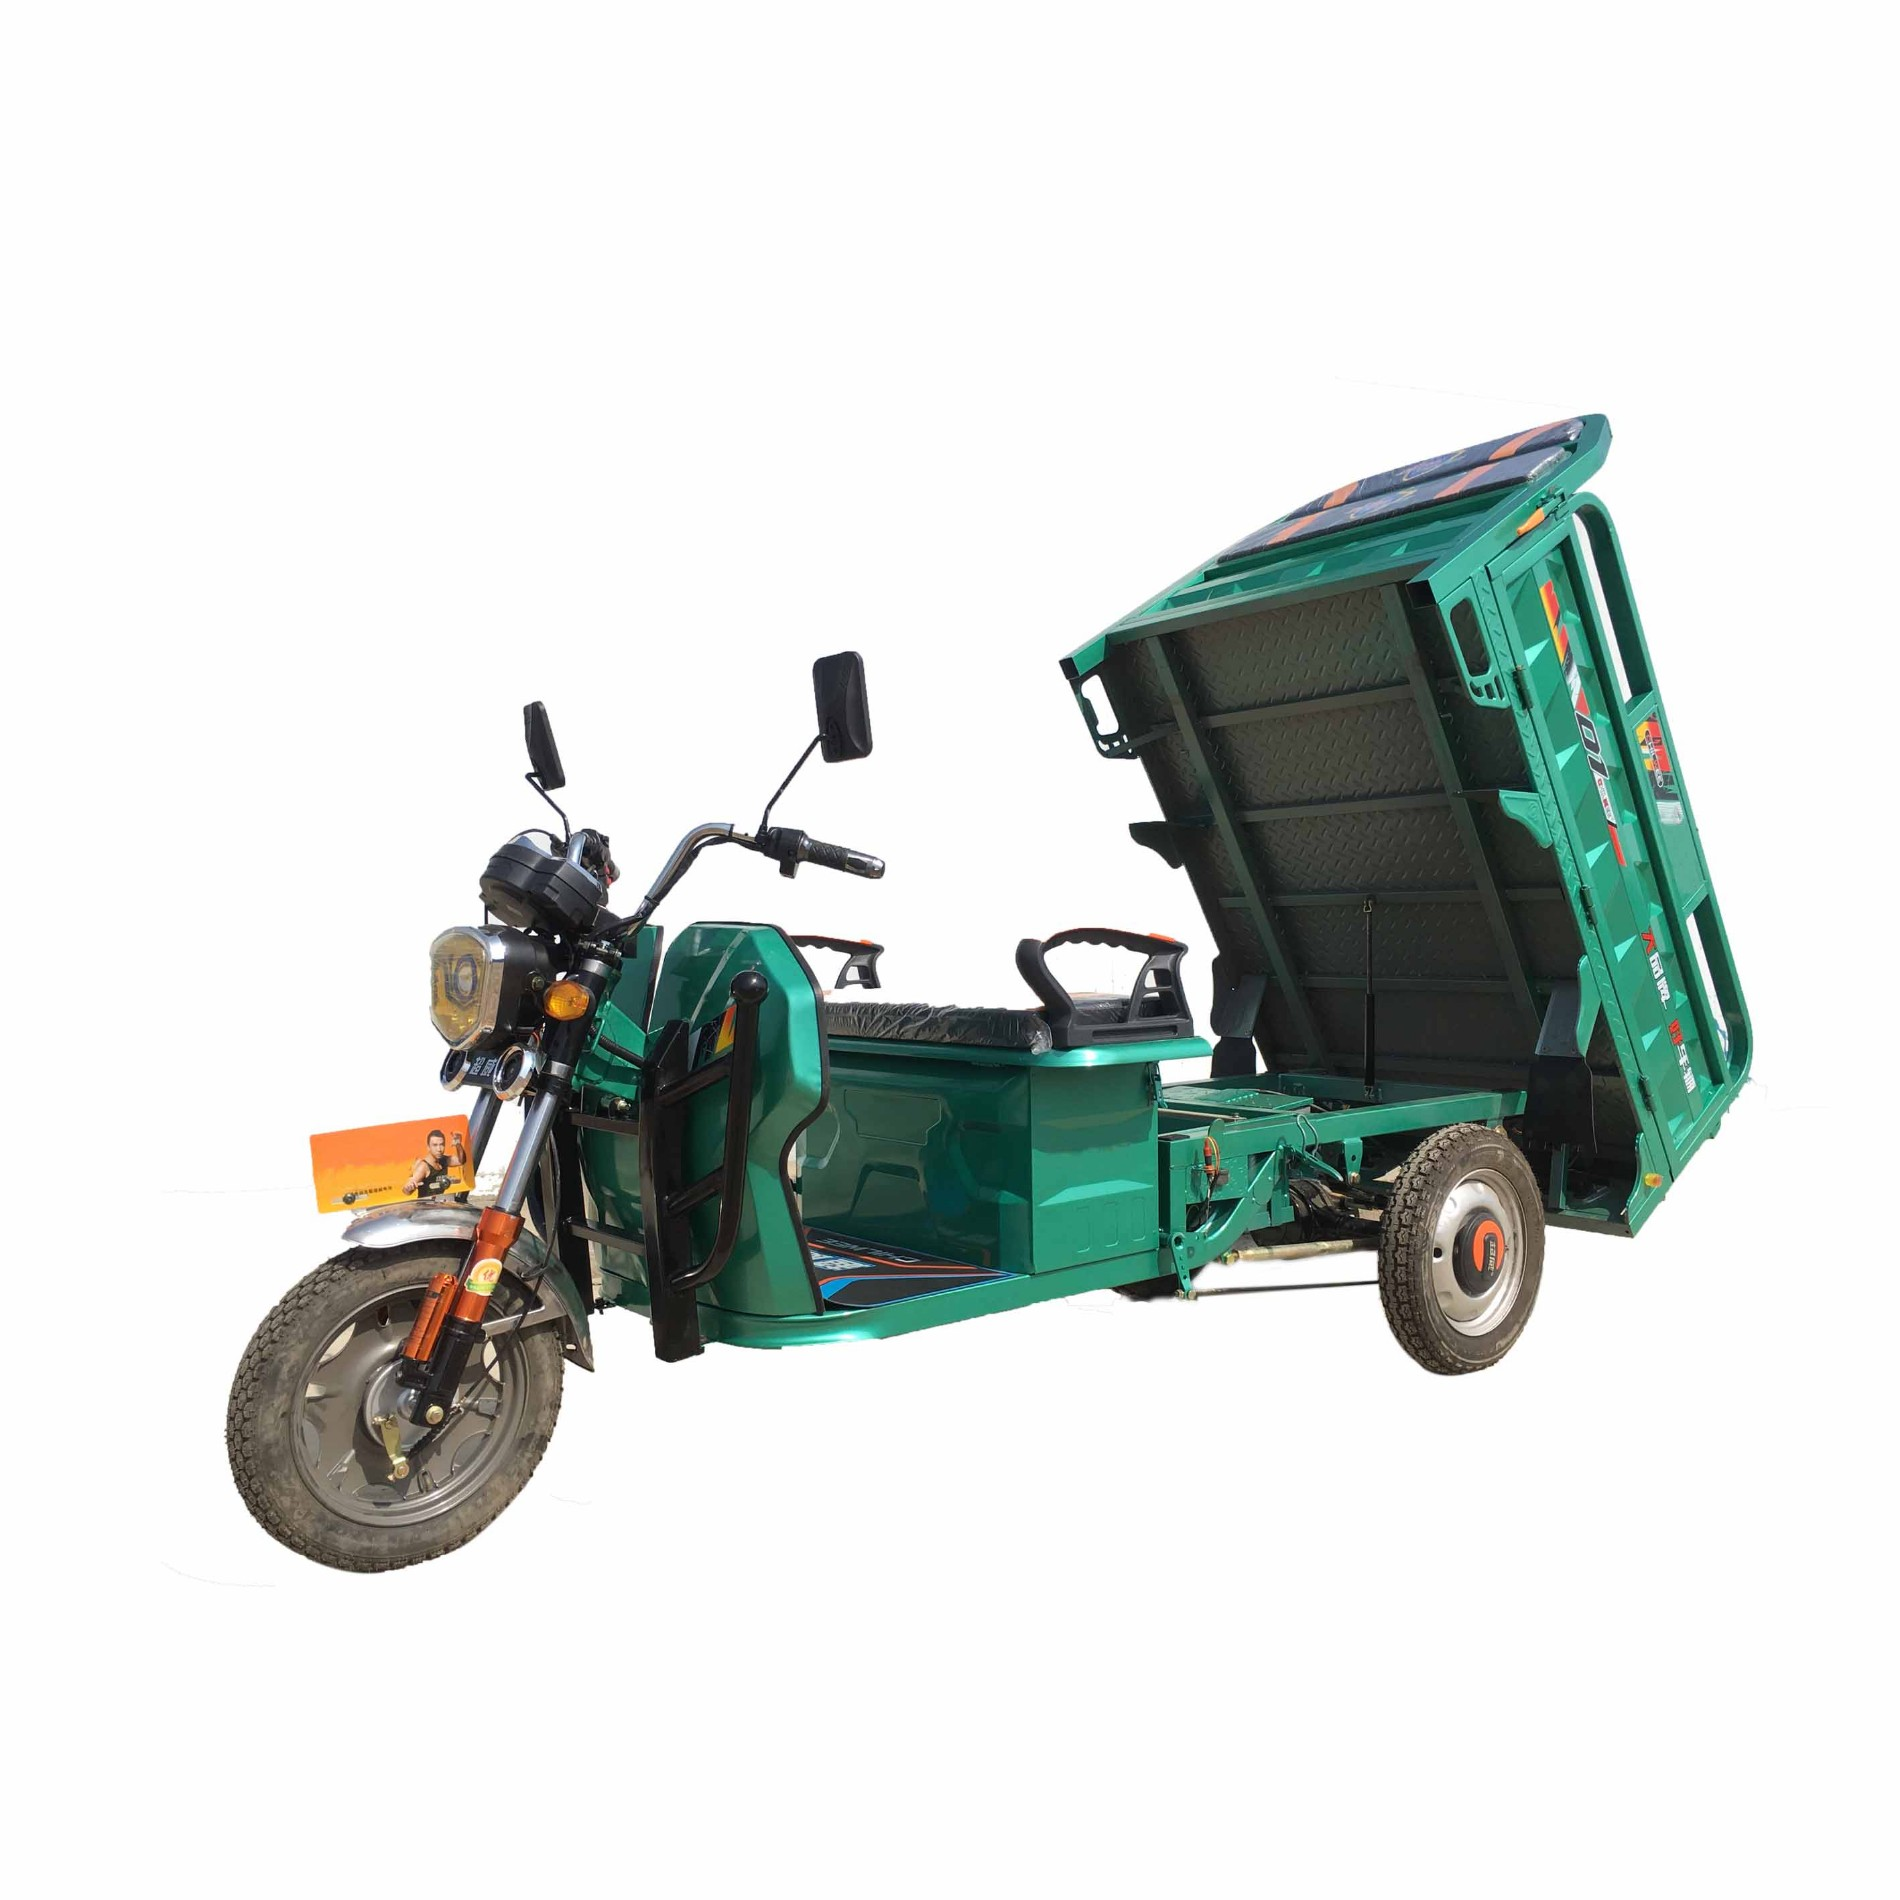 Battery Powered 1000W Electric Cabin Cargo Tricycle 3-Wheel Cargo Loader Manufacturers, Battery Powered 1000W Electric Cabin Cargo Tricycle 3-Wheel Cargo Loader Factory, Supply Battery Powered 1000W Electric Cabin Cargo Tricycle 3-Wheel Cargo Loader